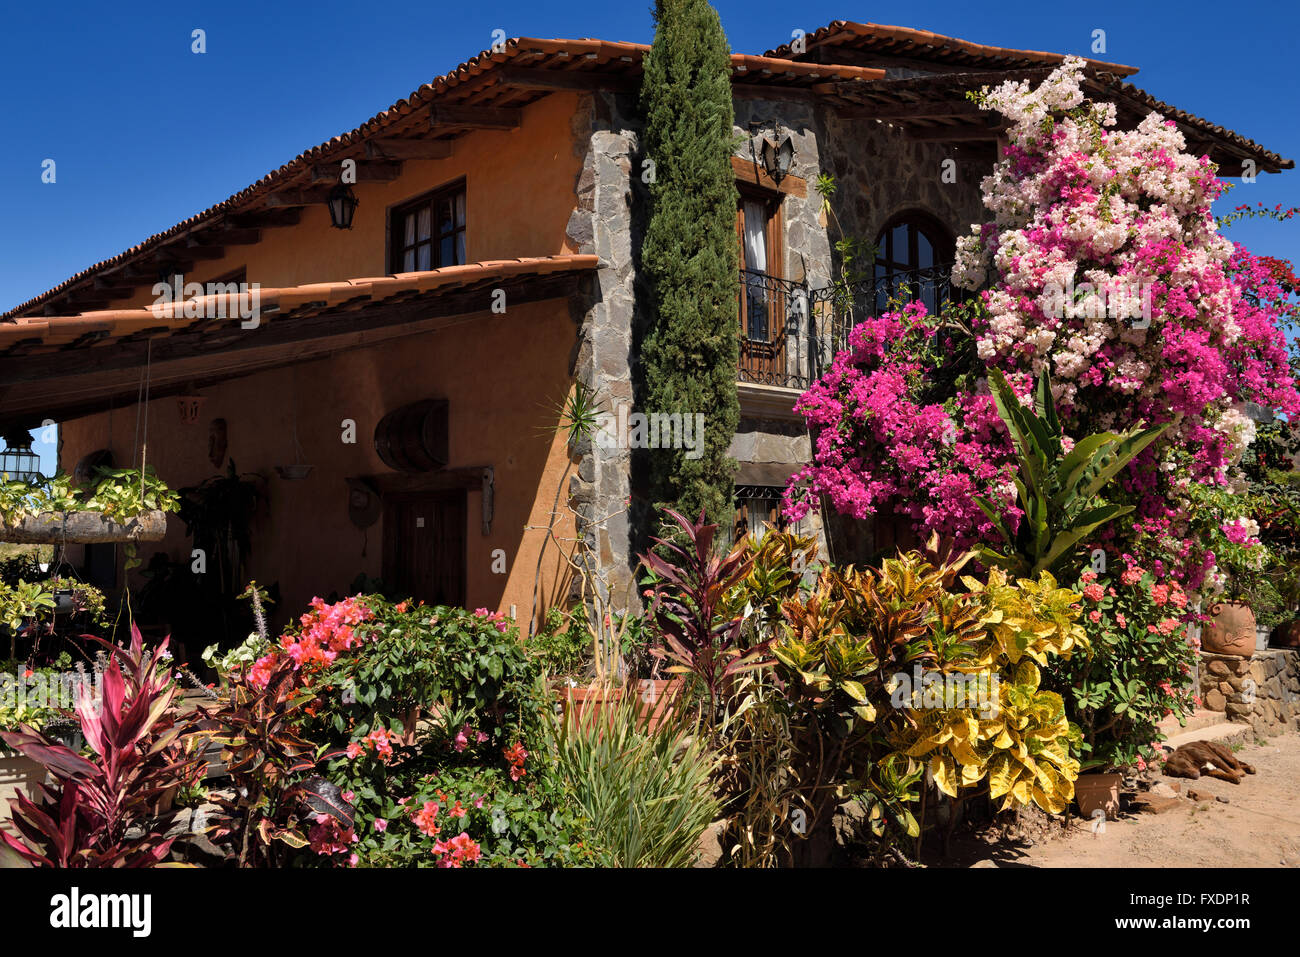 Hacienda with flowers in San Sebastian del Oeste Mexico at tequila factory - Stock Image